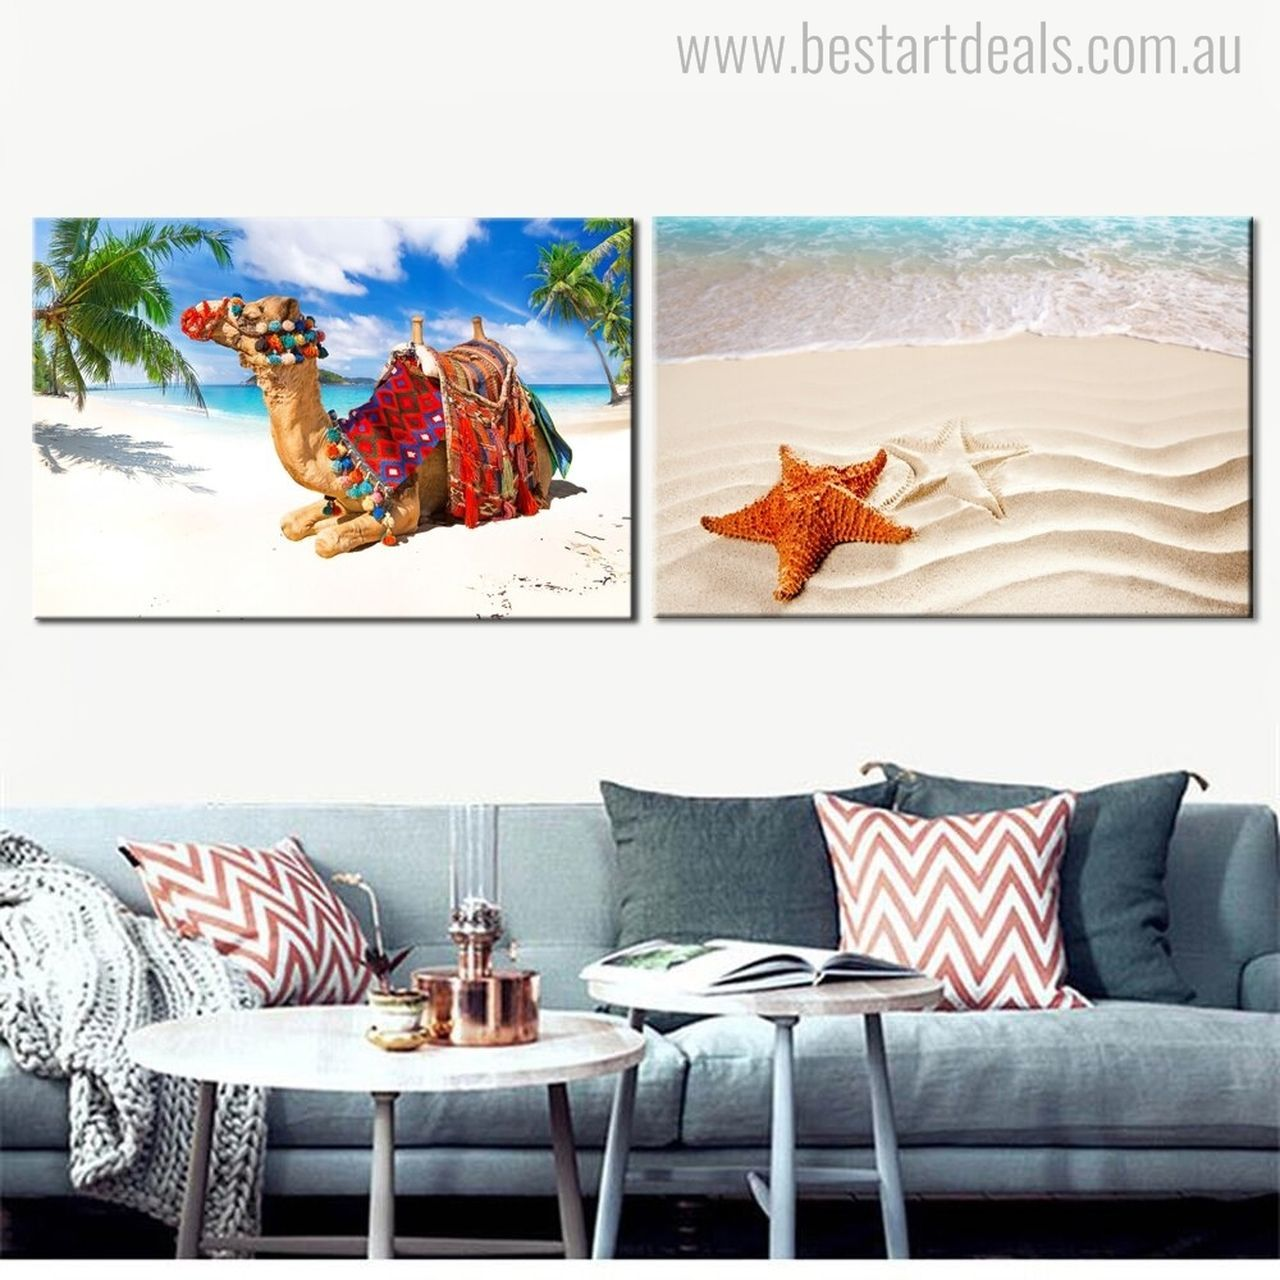 Get this unique combination of star fish and camel wall art prints at cheap price. We are available online to sell artwork.  #onlineart #artseller #wallart #printsforsale